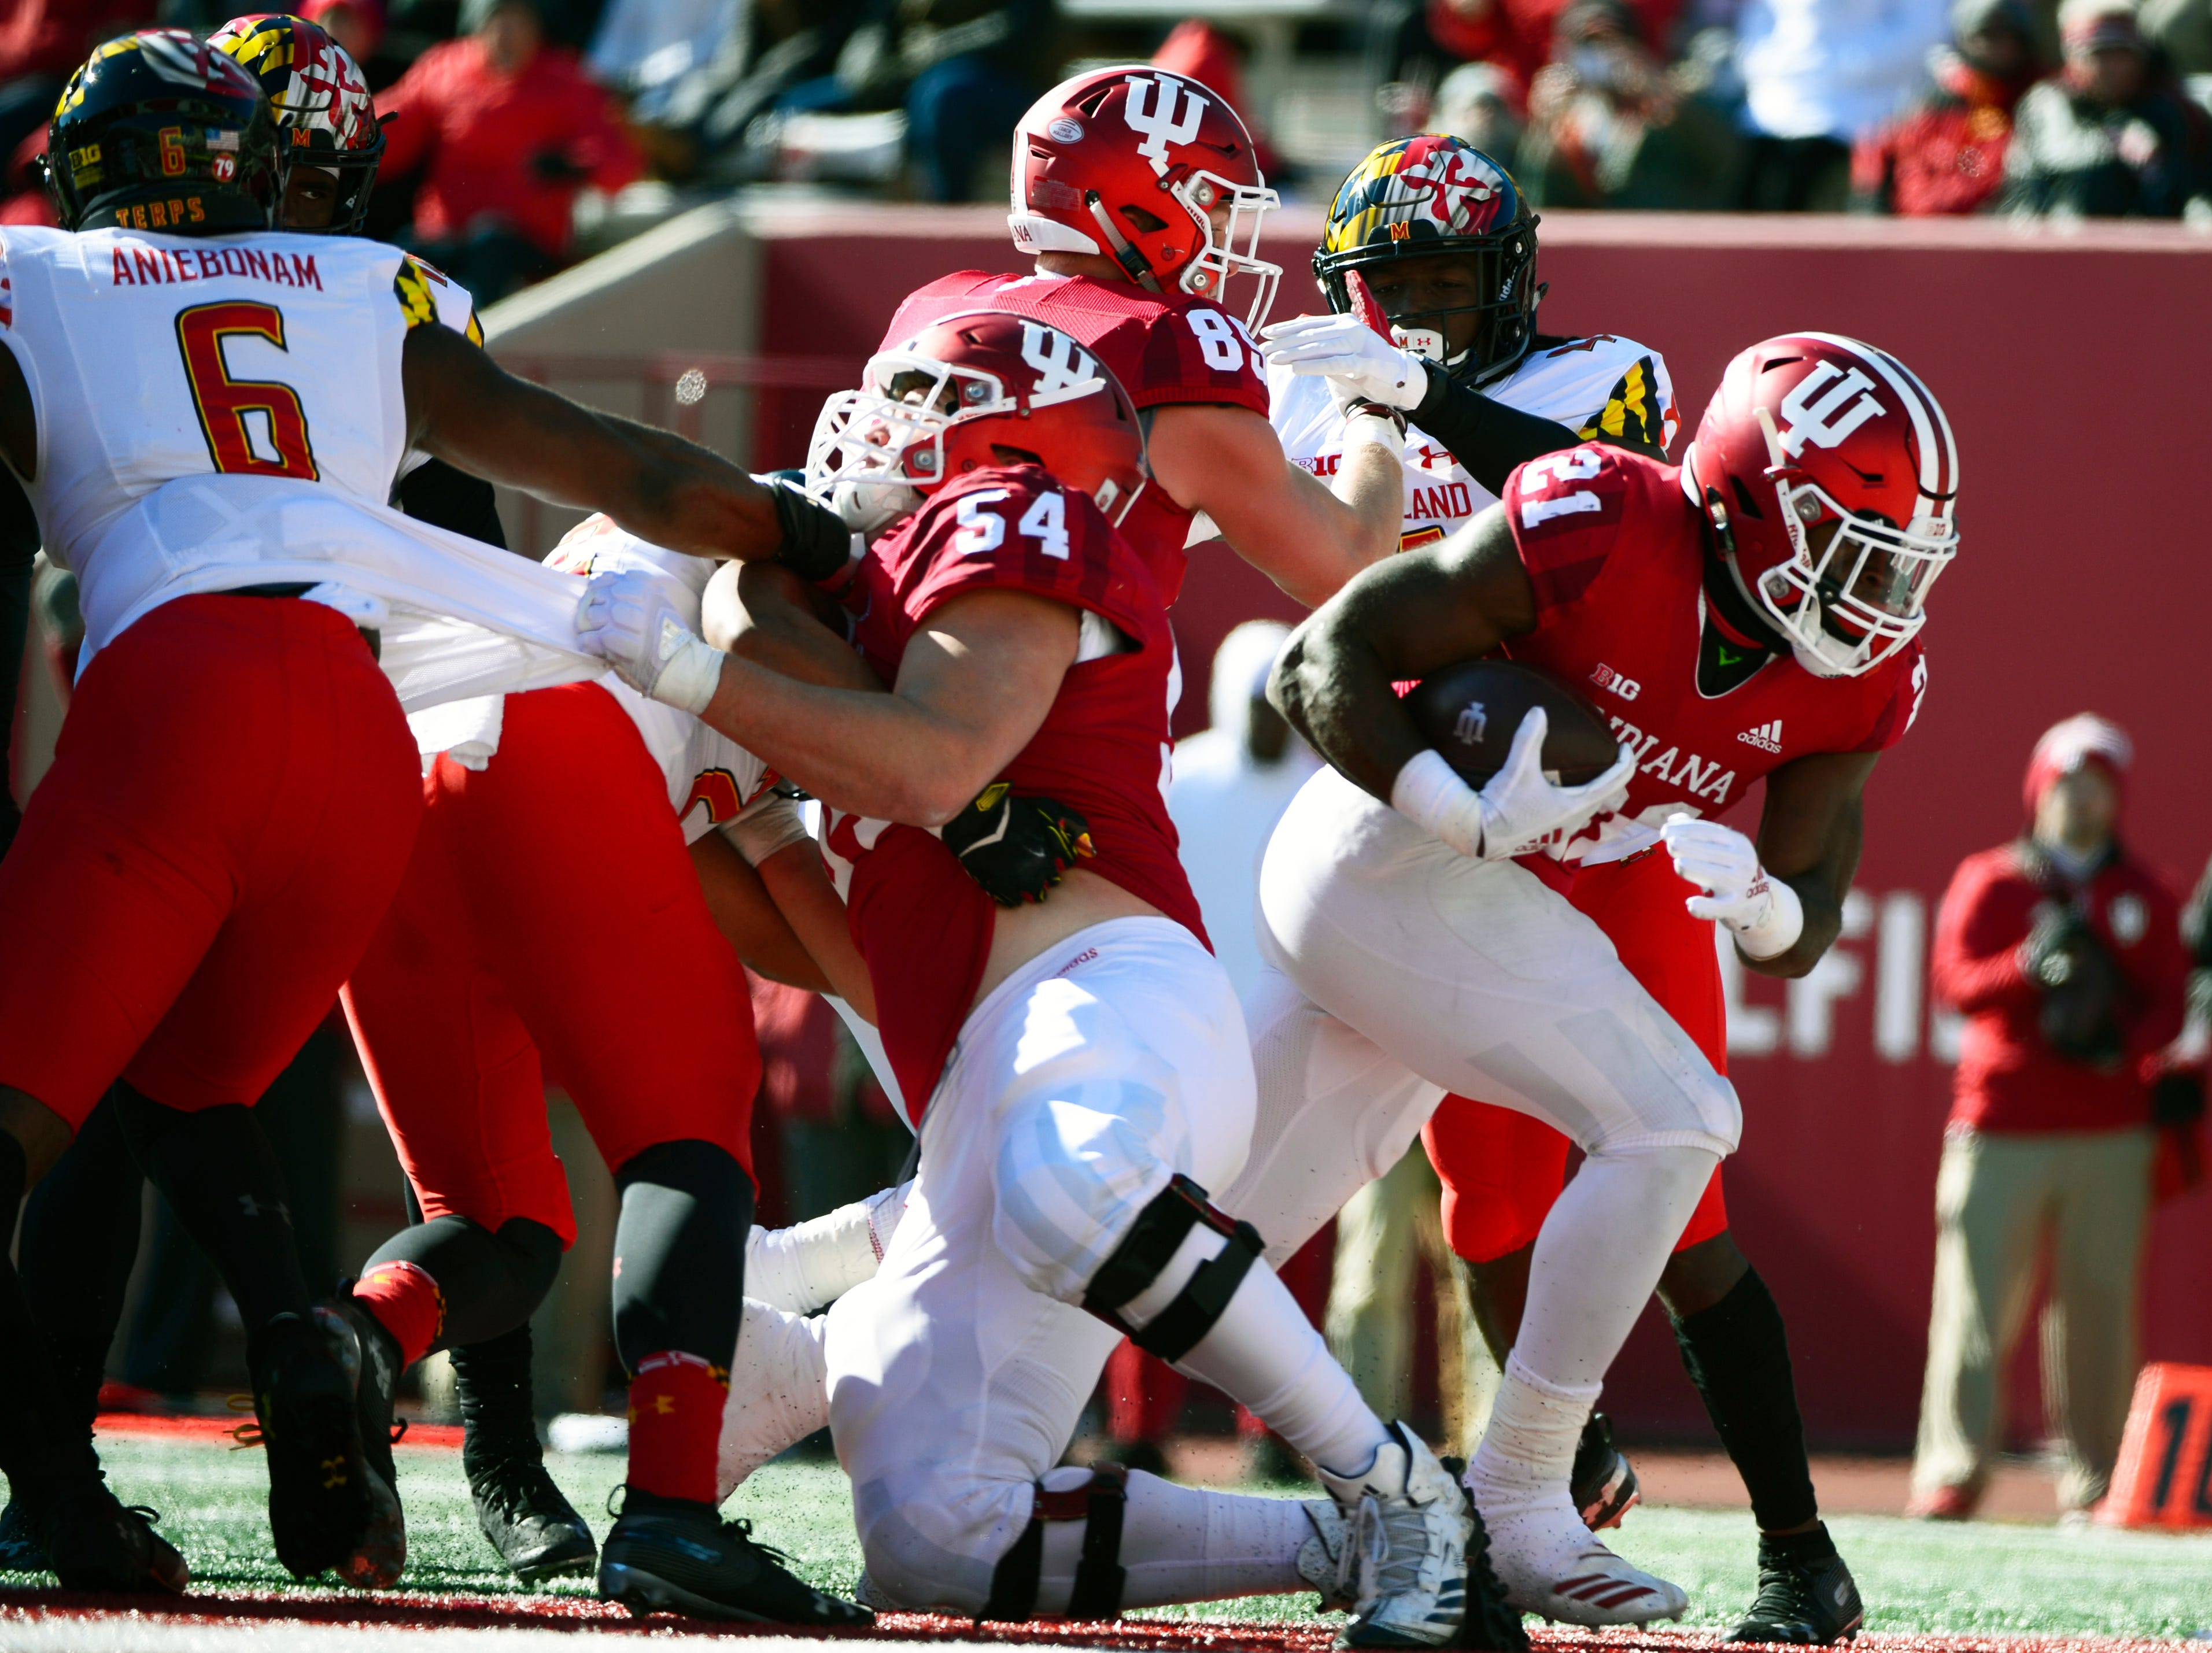 Indiana Hoosiers running back Stevie Scott (21) scores a touchdown during the game against Maryland at Memorial Stadium in Bloomington, Ind., on Satuday, Nov. 10, 2018.